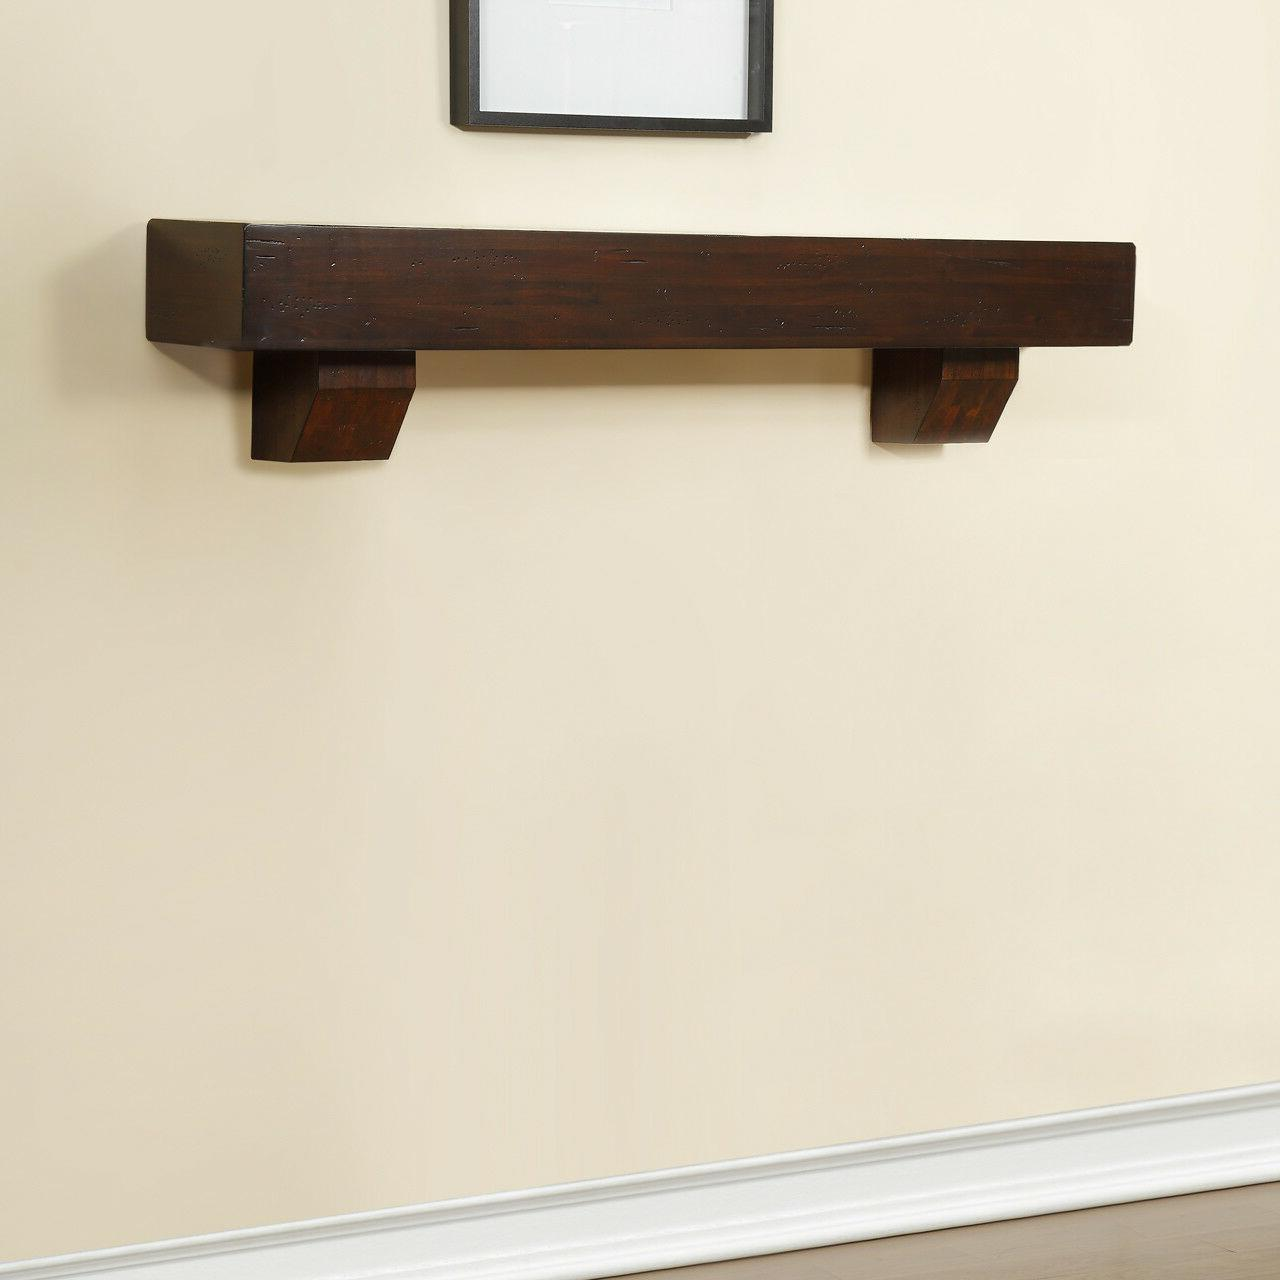 Duluth Fireplace Shelf Mantel Corbels - Chocolate Finish